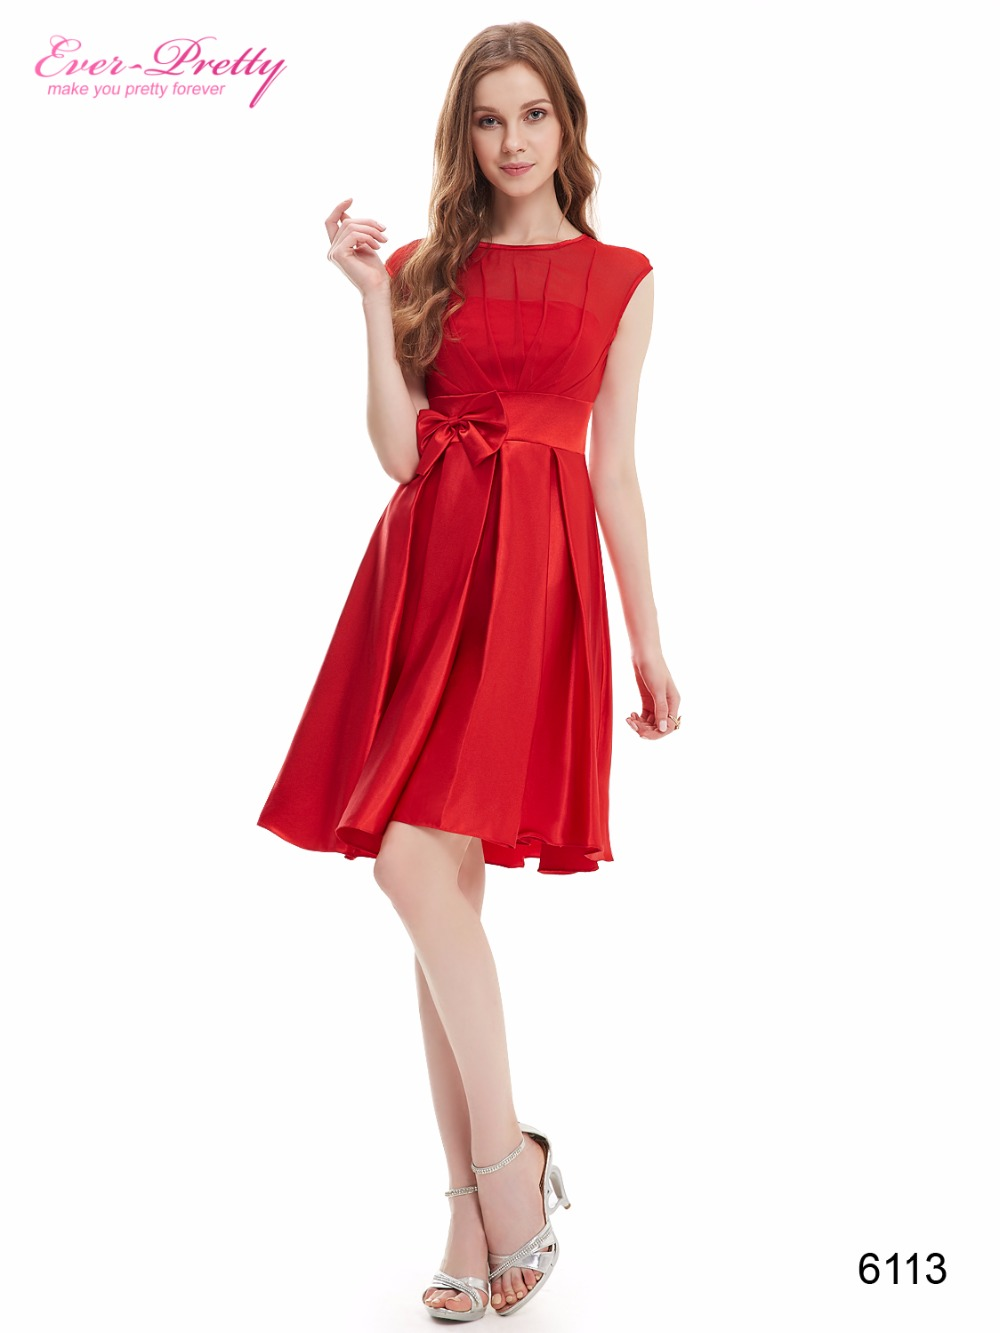 Clearance Sale  Elegant Cocktail Dresses Ever Pretty HE06113 Women Satin  Short Dresses Sexy vestidos b15710f11375